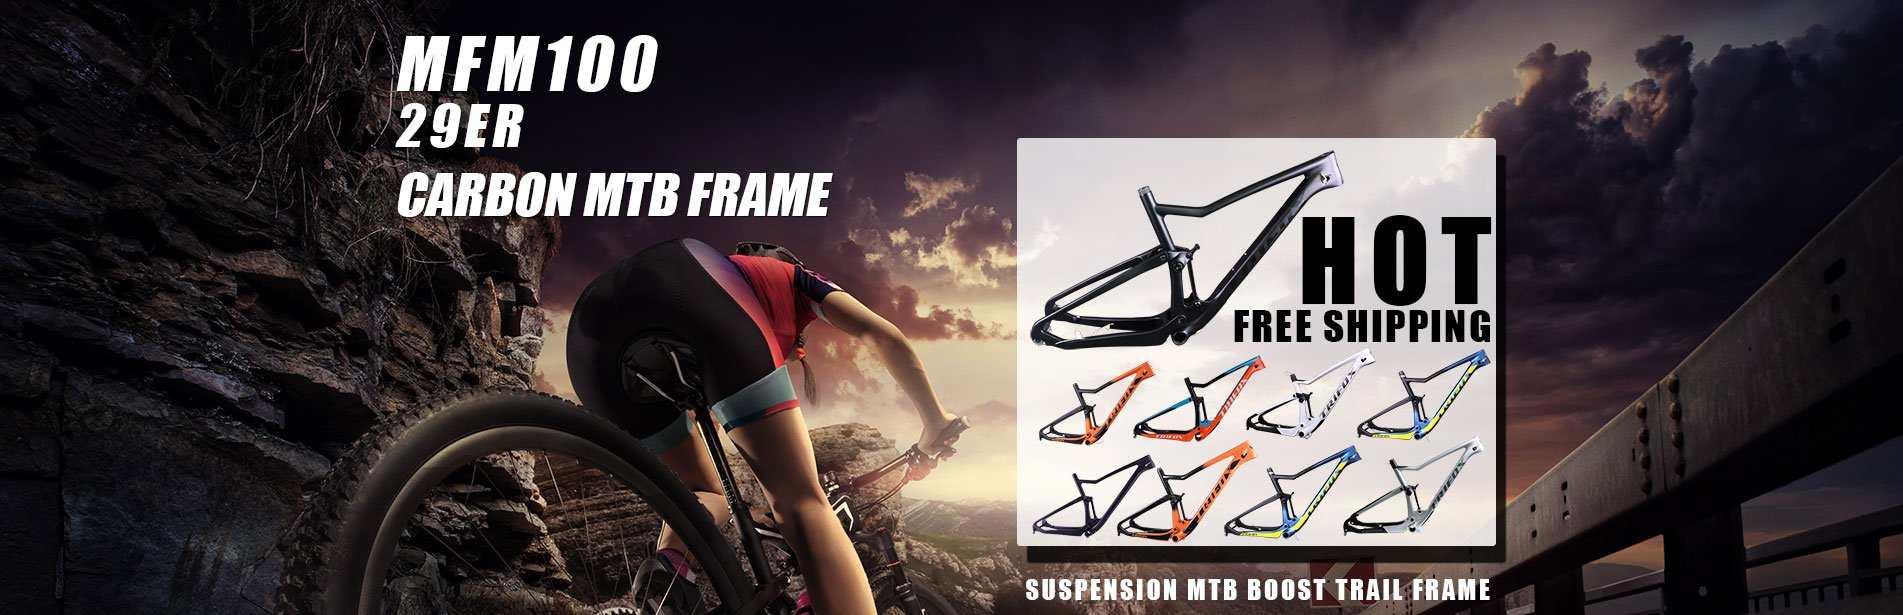 MFM100 29er Carbon Suspension MTB Boost Trail Frame